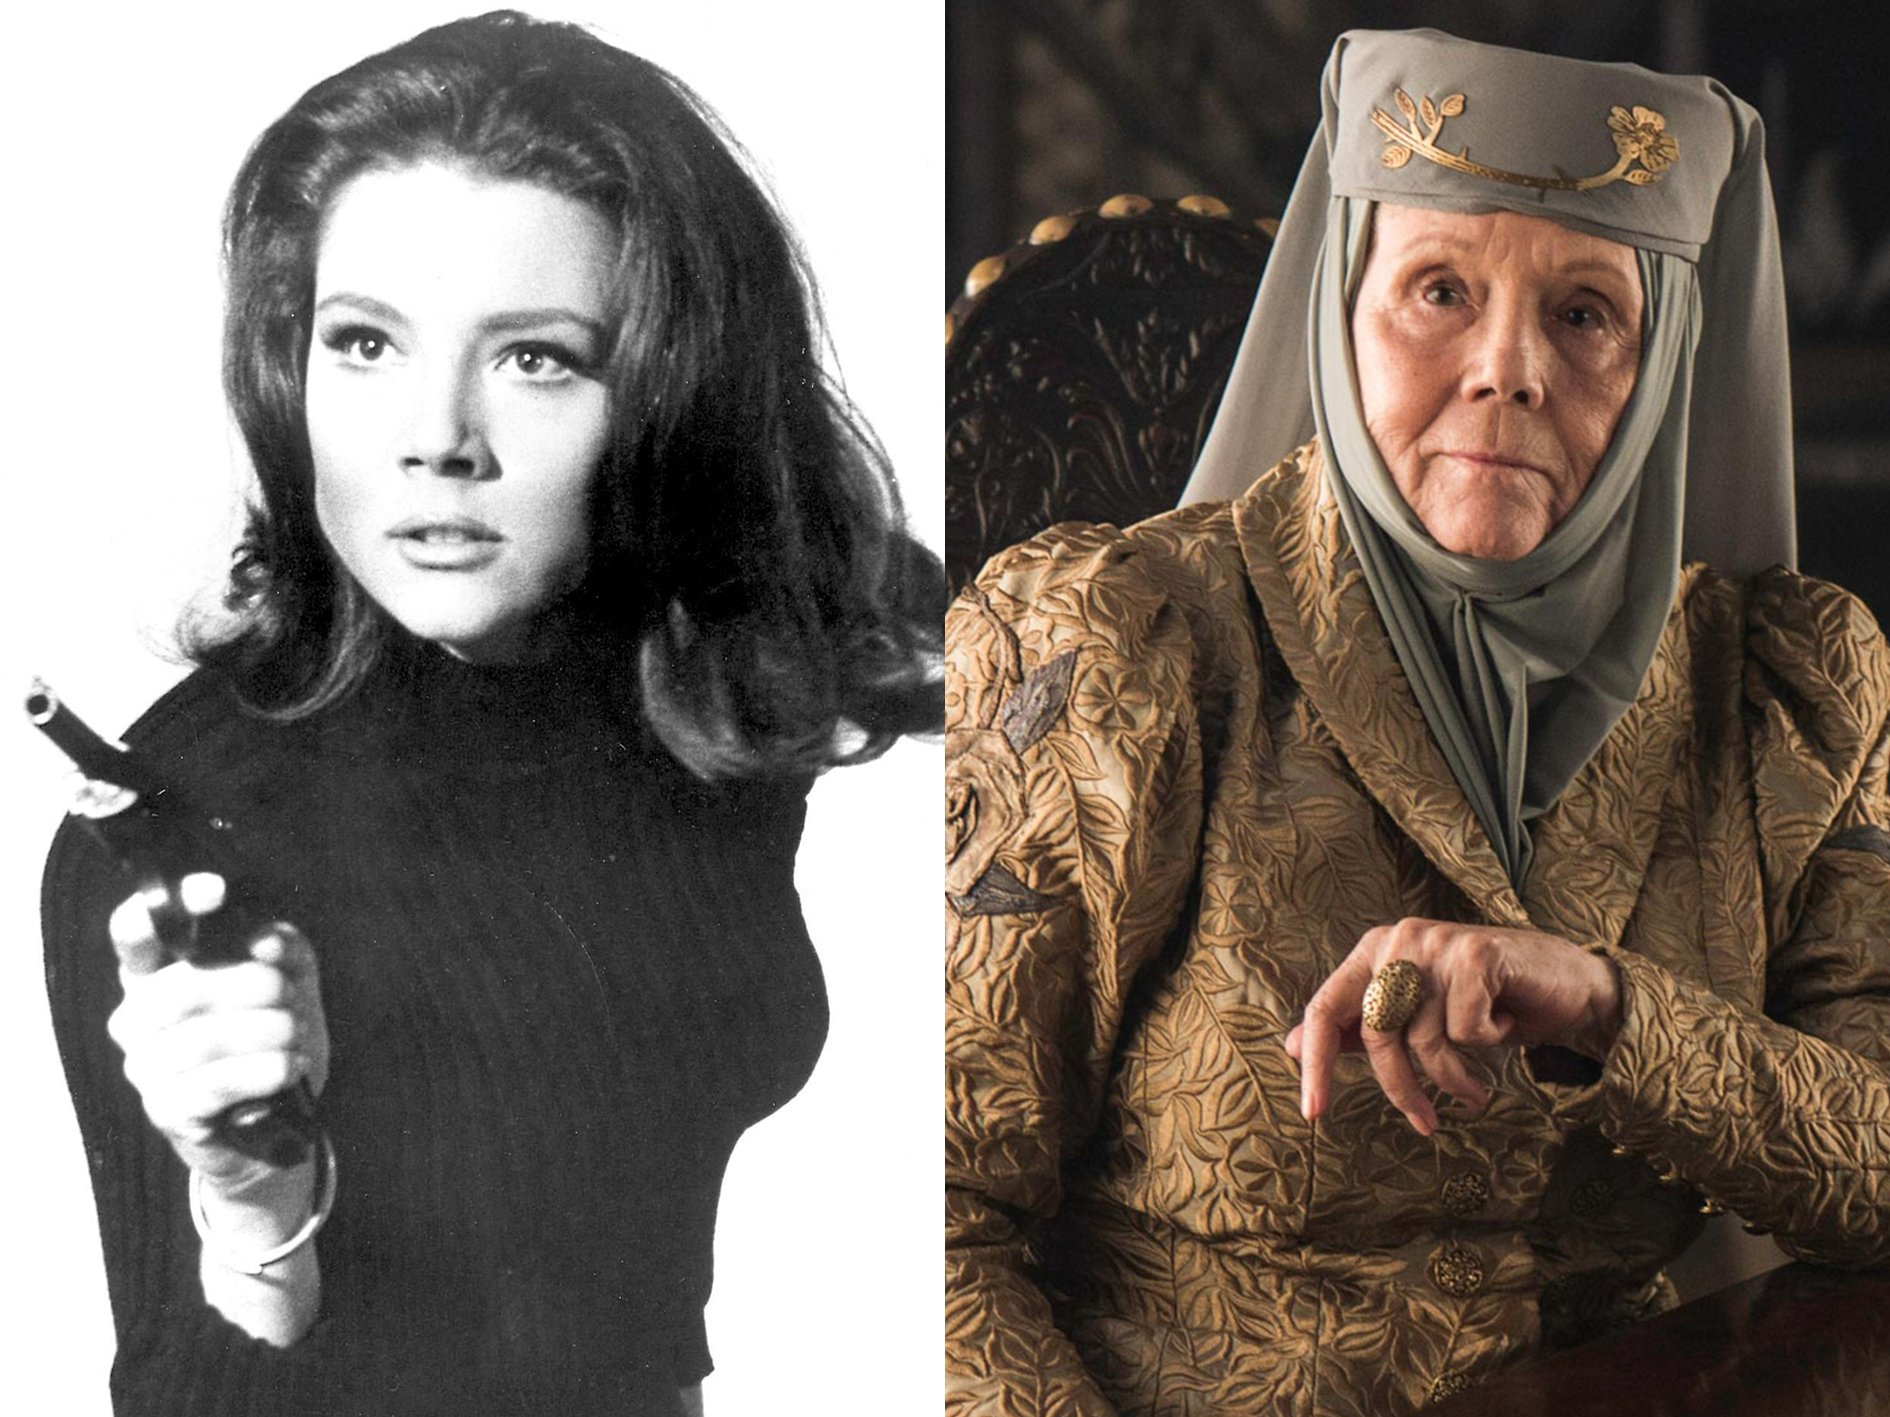 Diana Rigg Avengers Game of Thrones 33 Things You Didn't Know About The Game of Thrones Cast